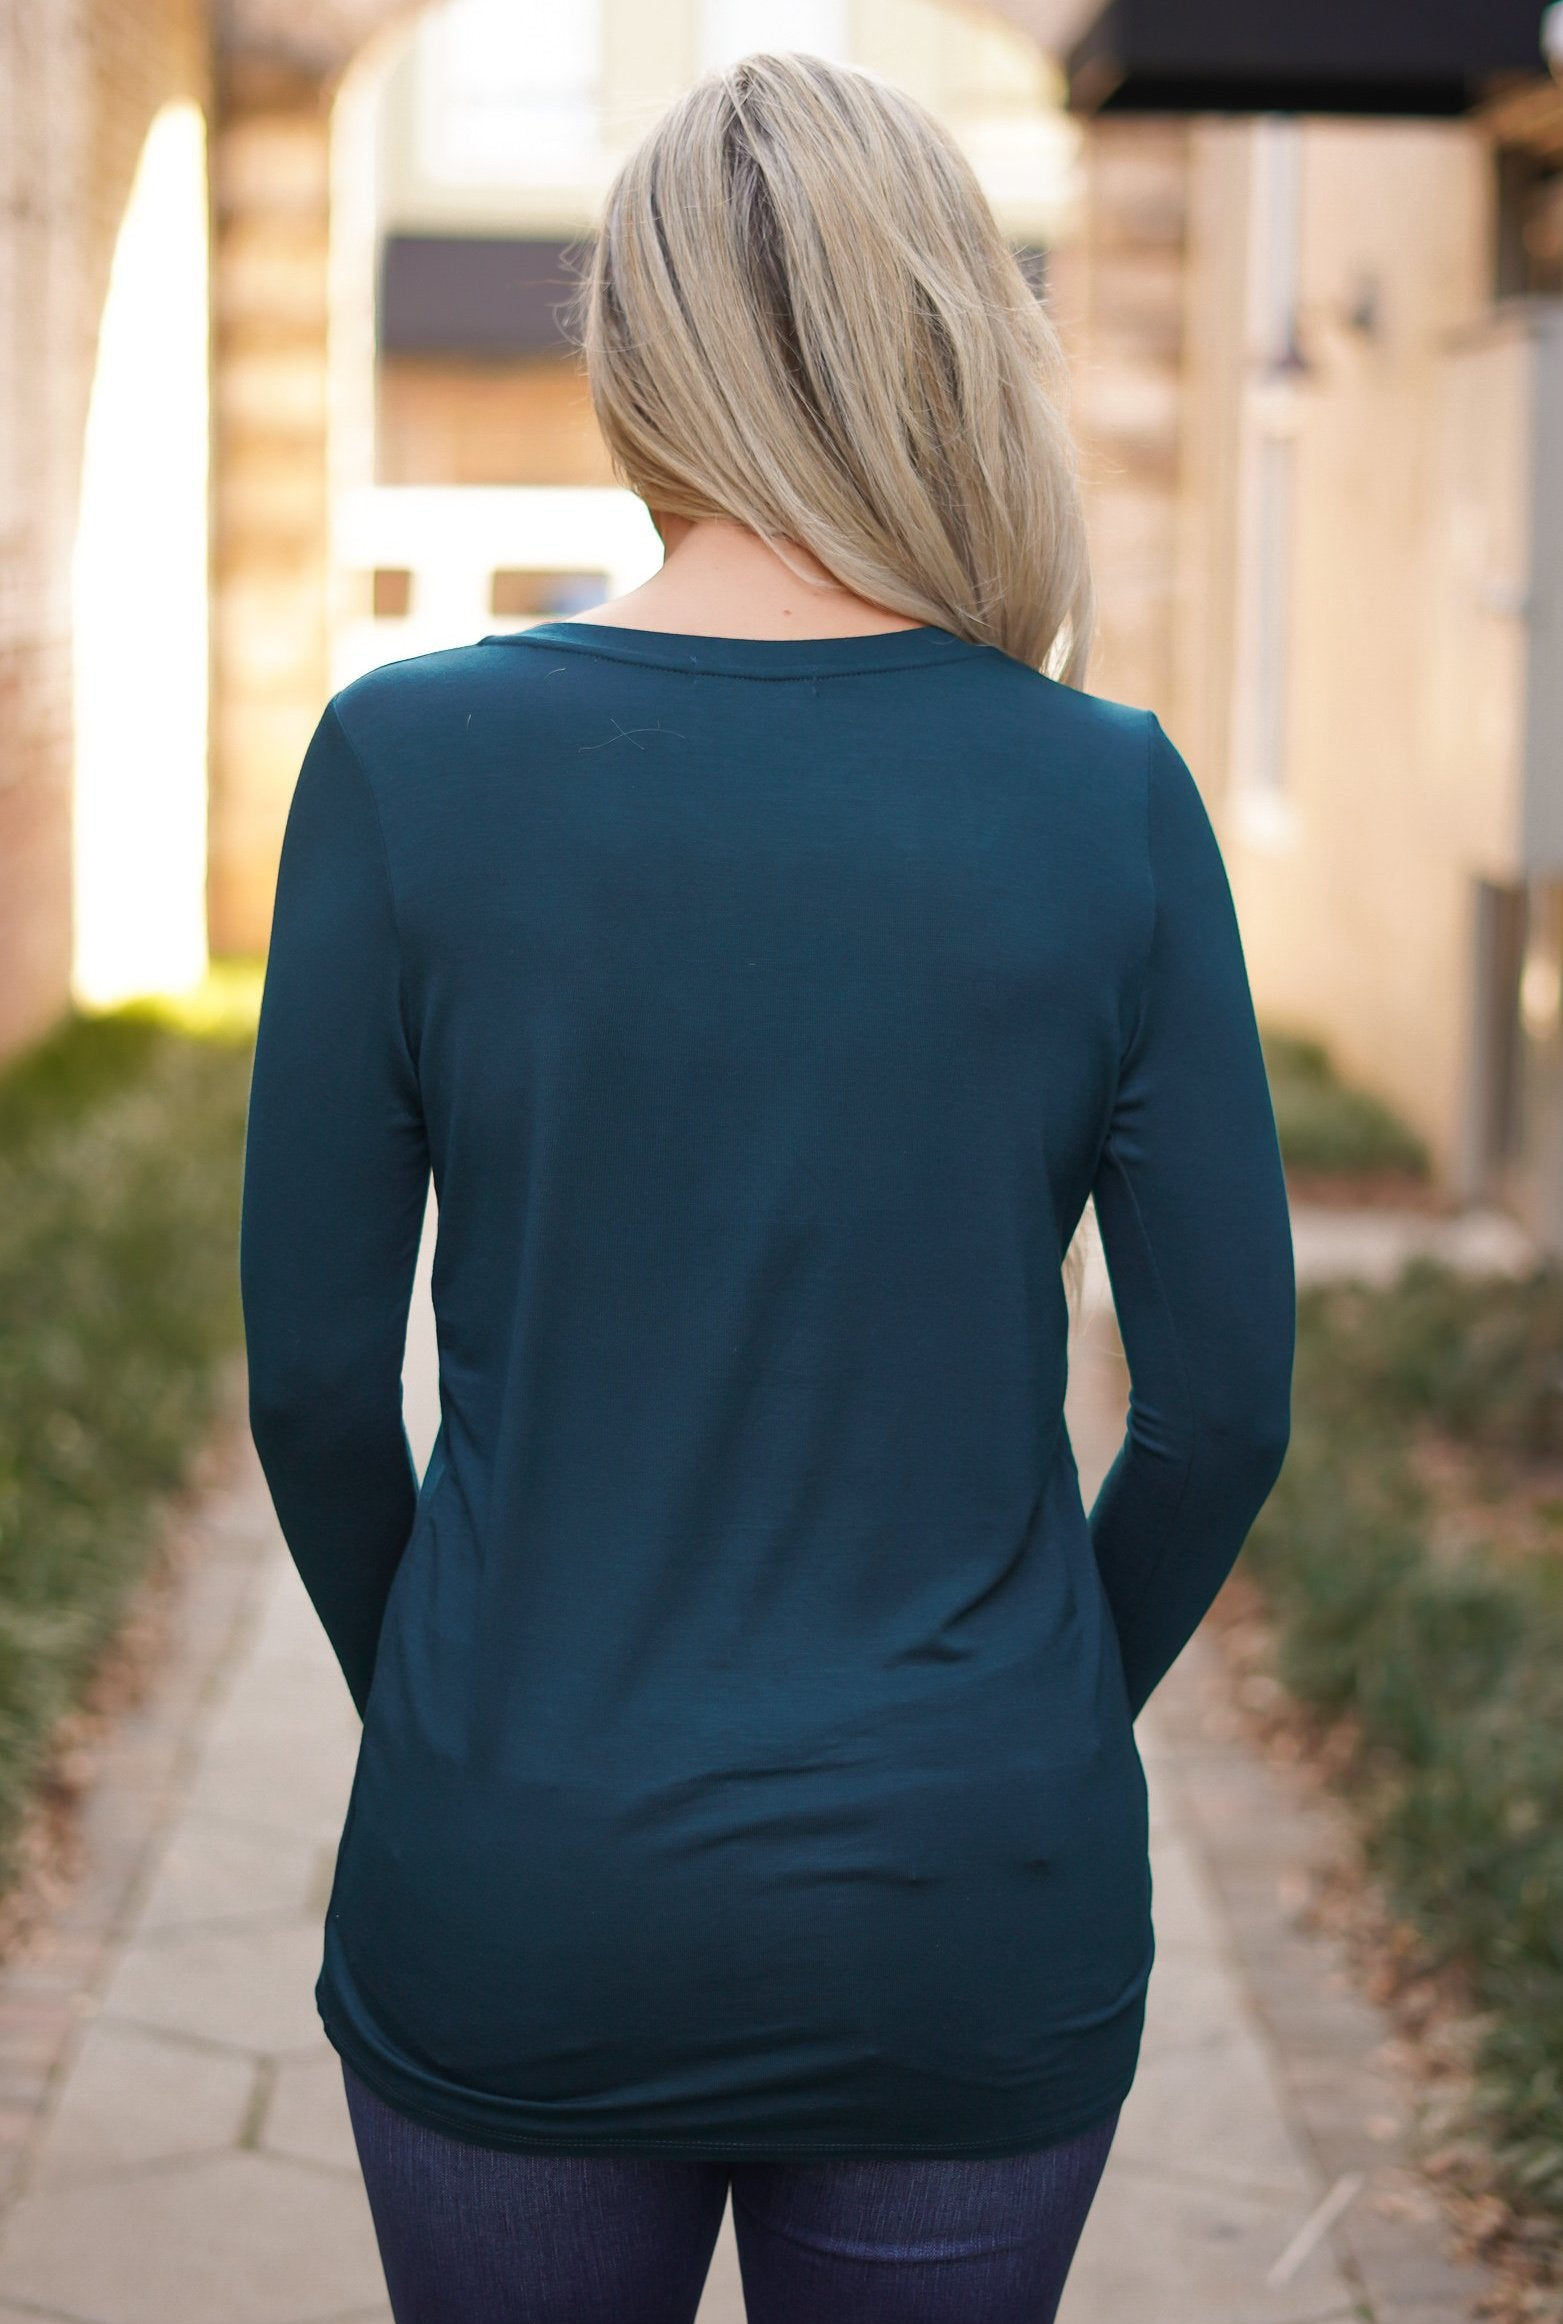 Undivided Attention Top - Teal